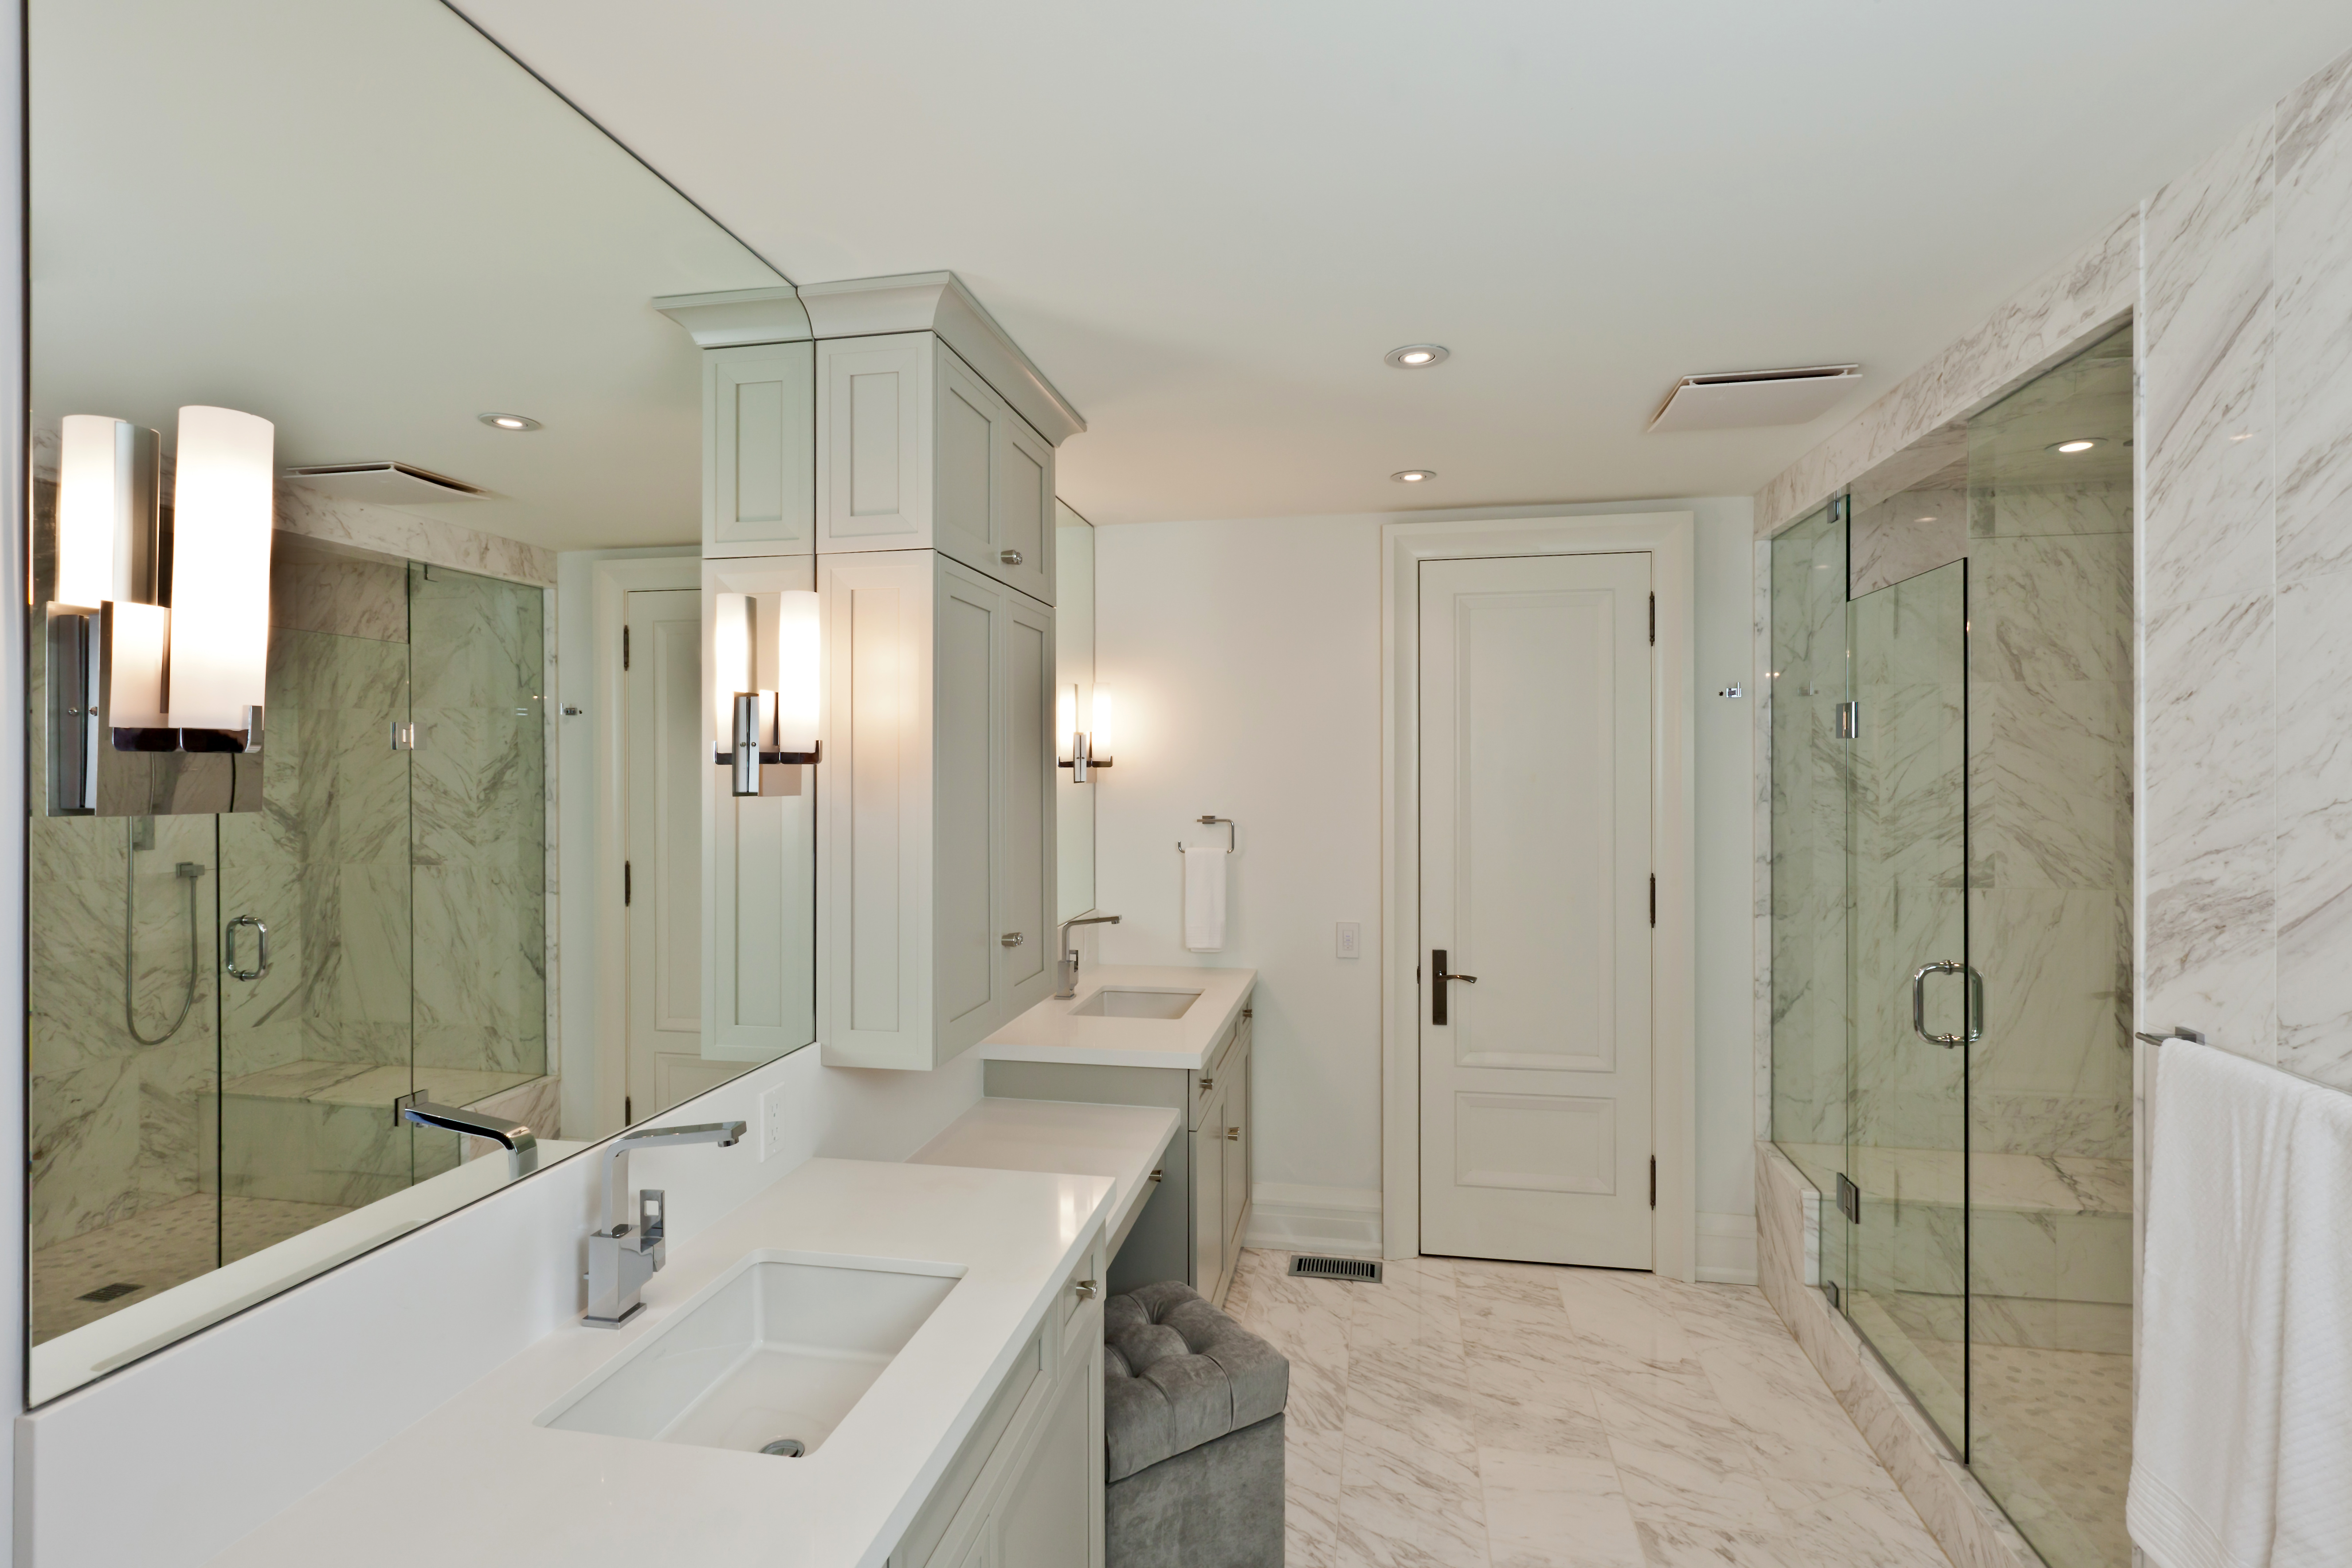 Picture of a nicely staged bathroom as an example of a tip for selling your home in the winter